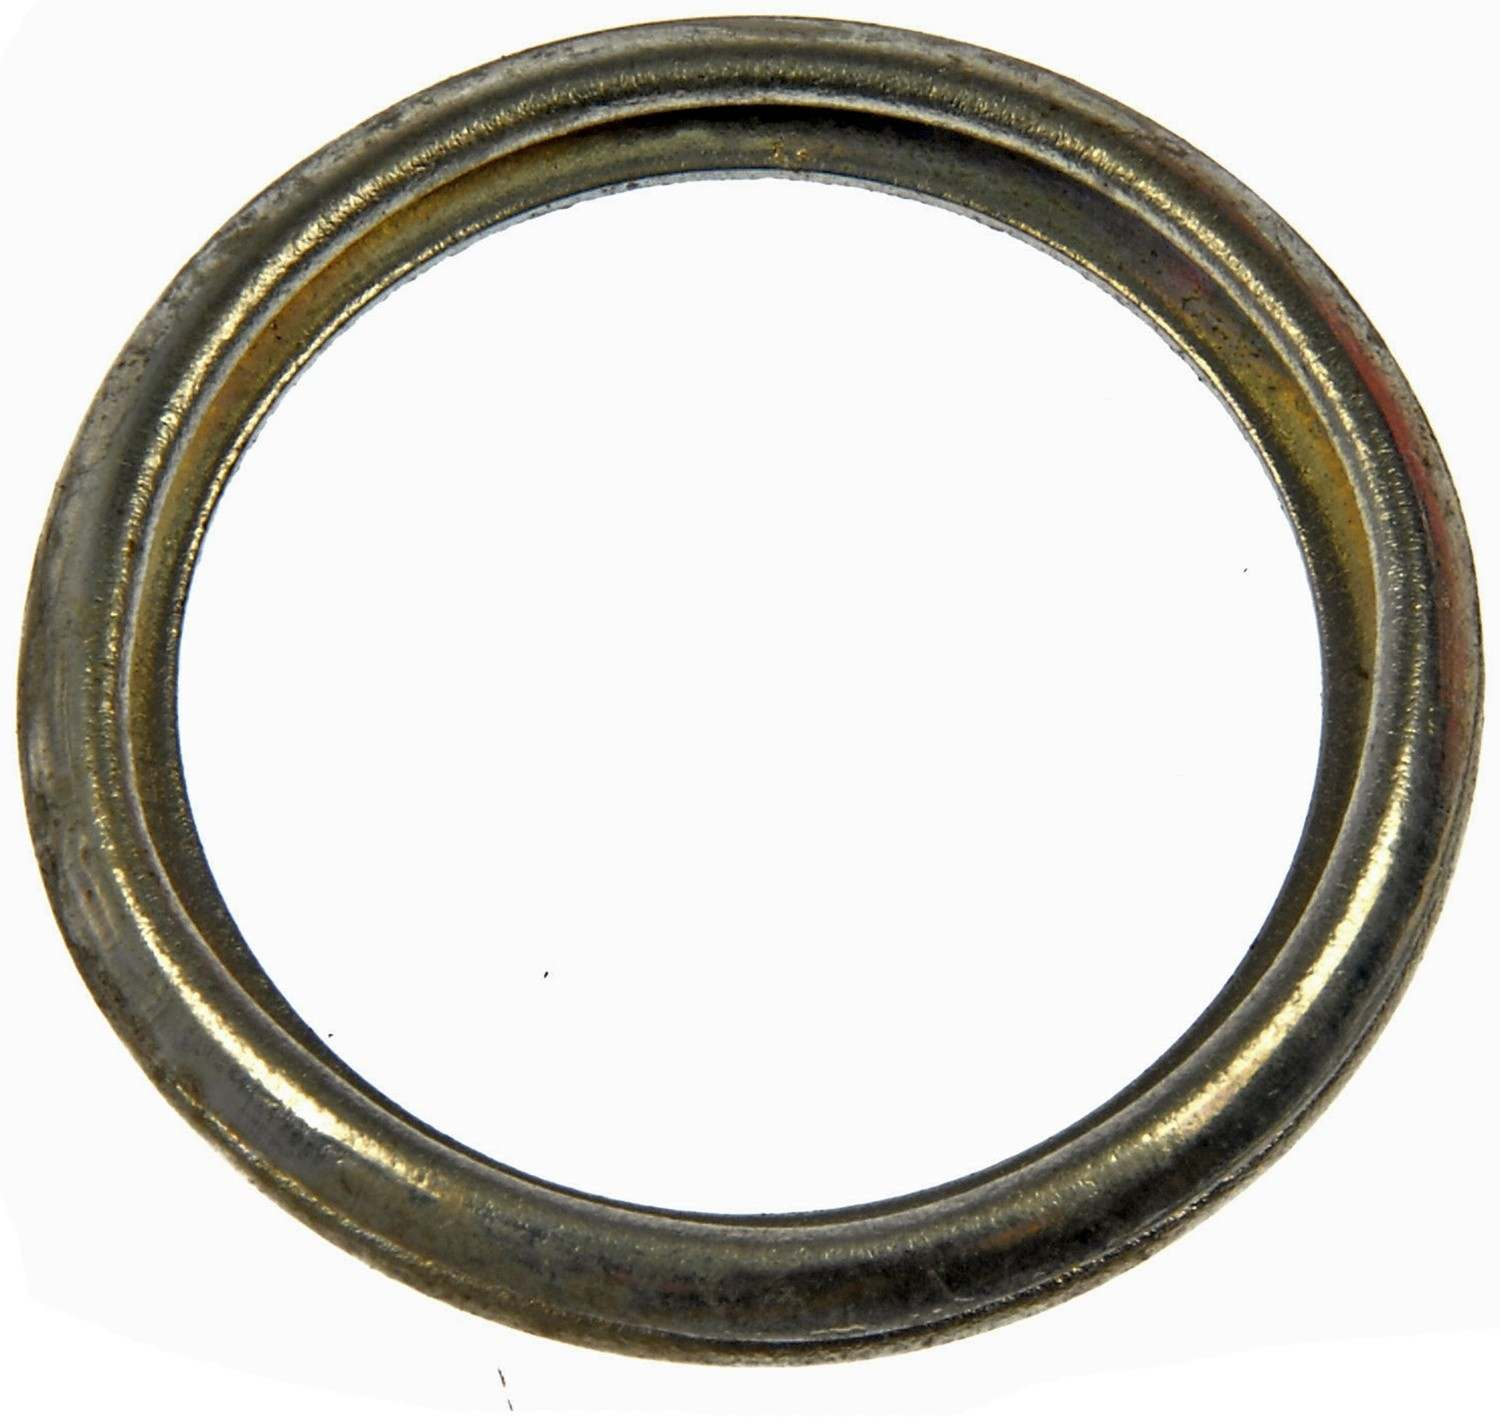 DORMAN - AUTOGRADE - Engine Oil Drain Plug Gasket - DOC 095-142.1